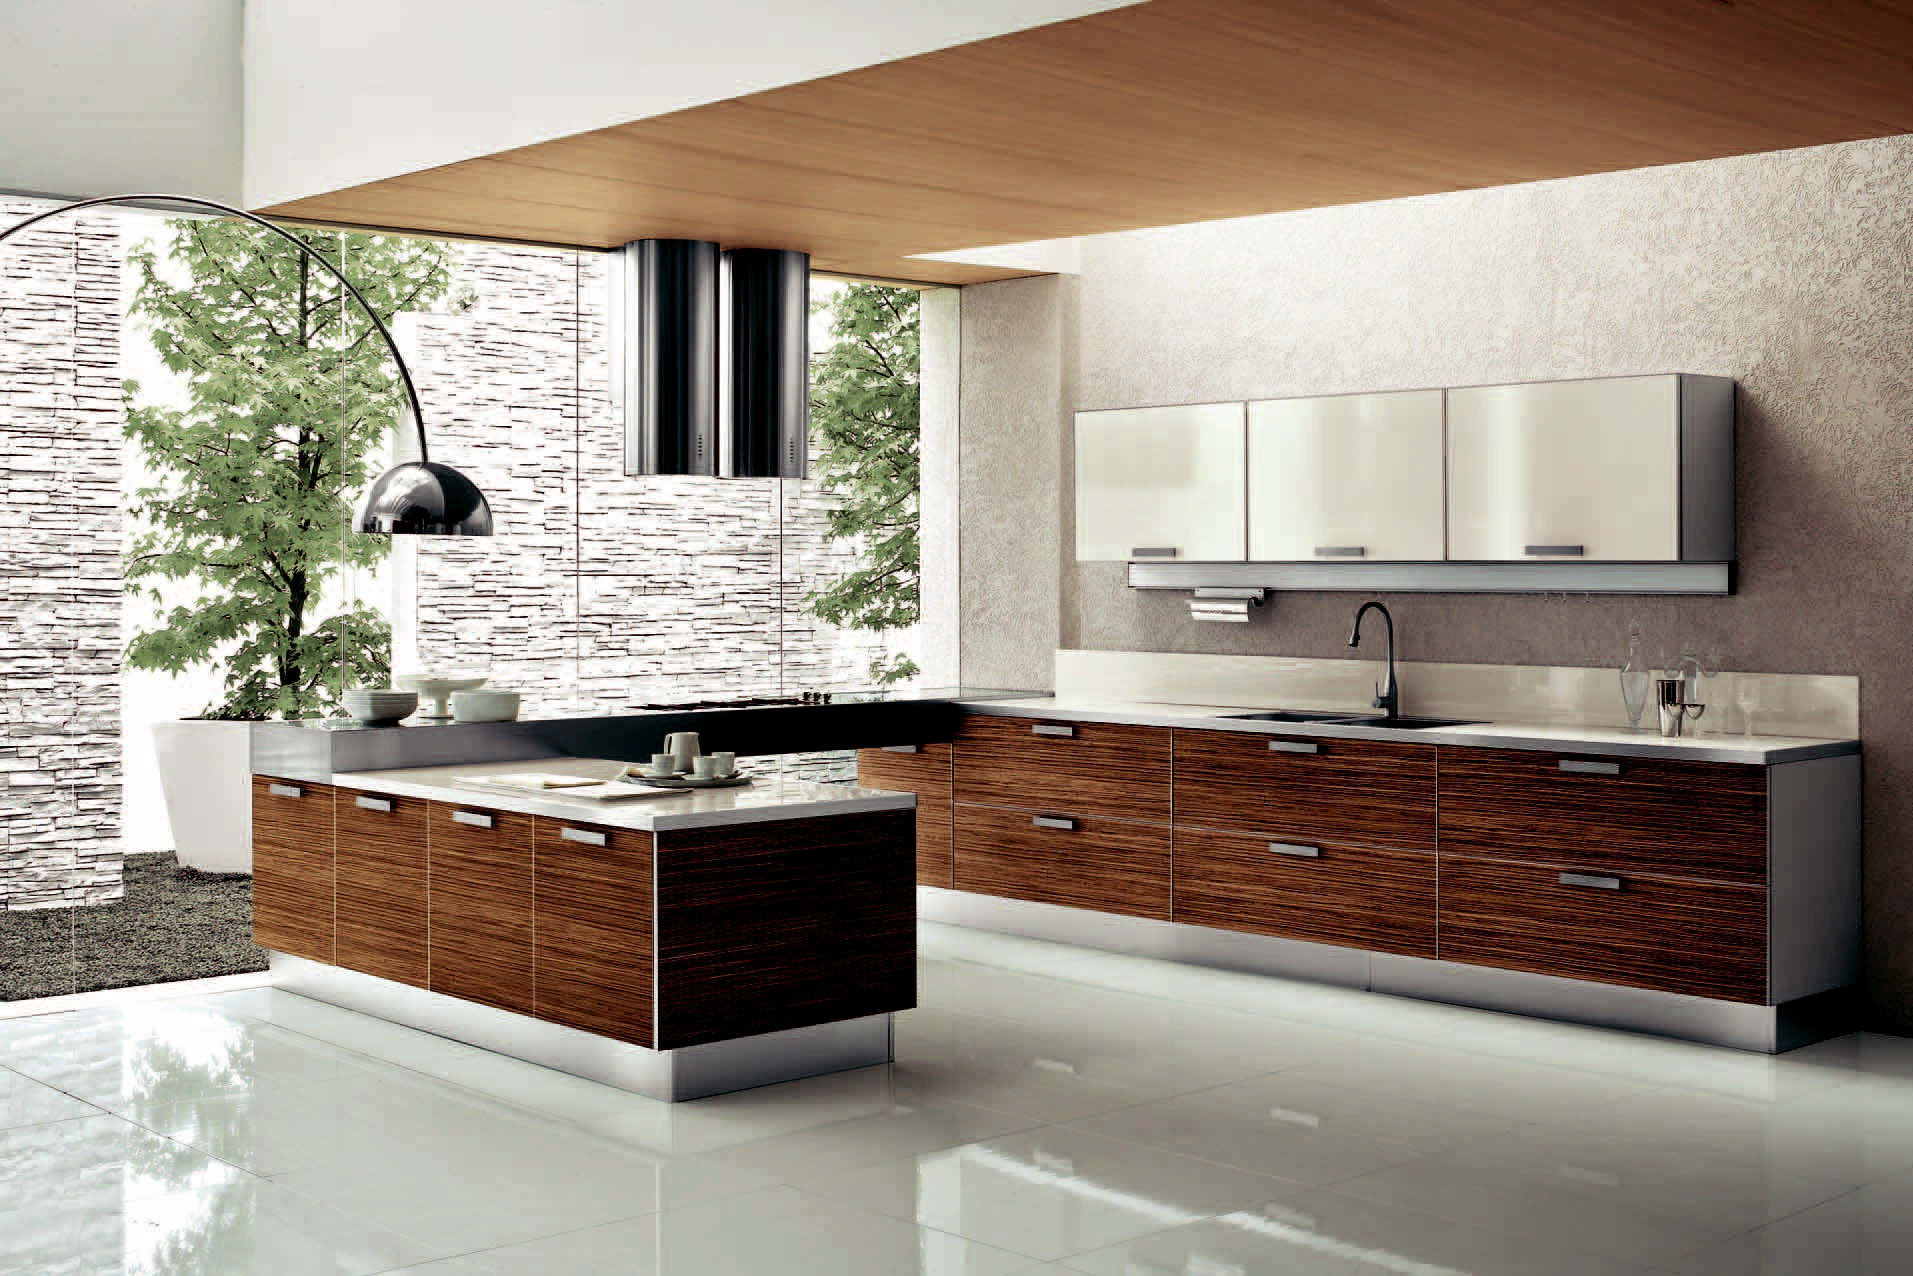 Kitchen Cabinet Wood Choices Beyond Kitchens Affordable Kitchen Cupboards Cape Town Kitchens